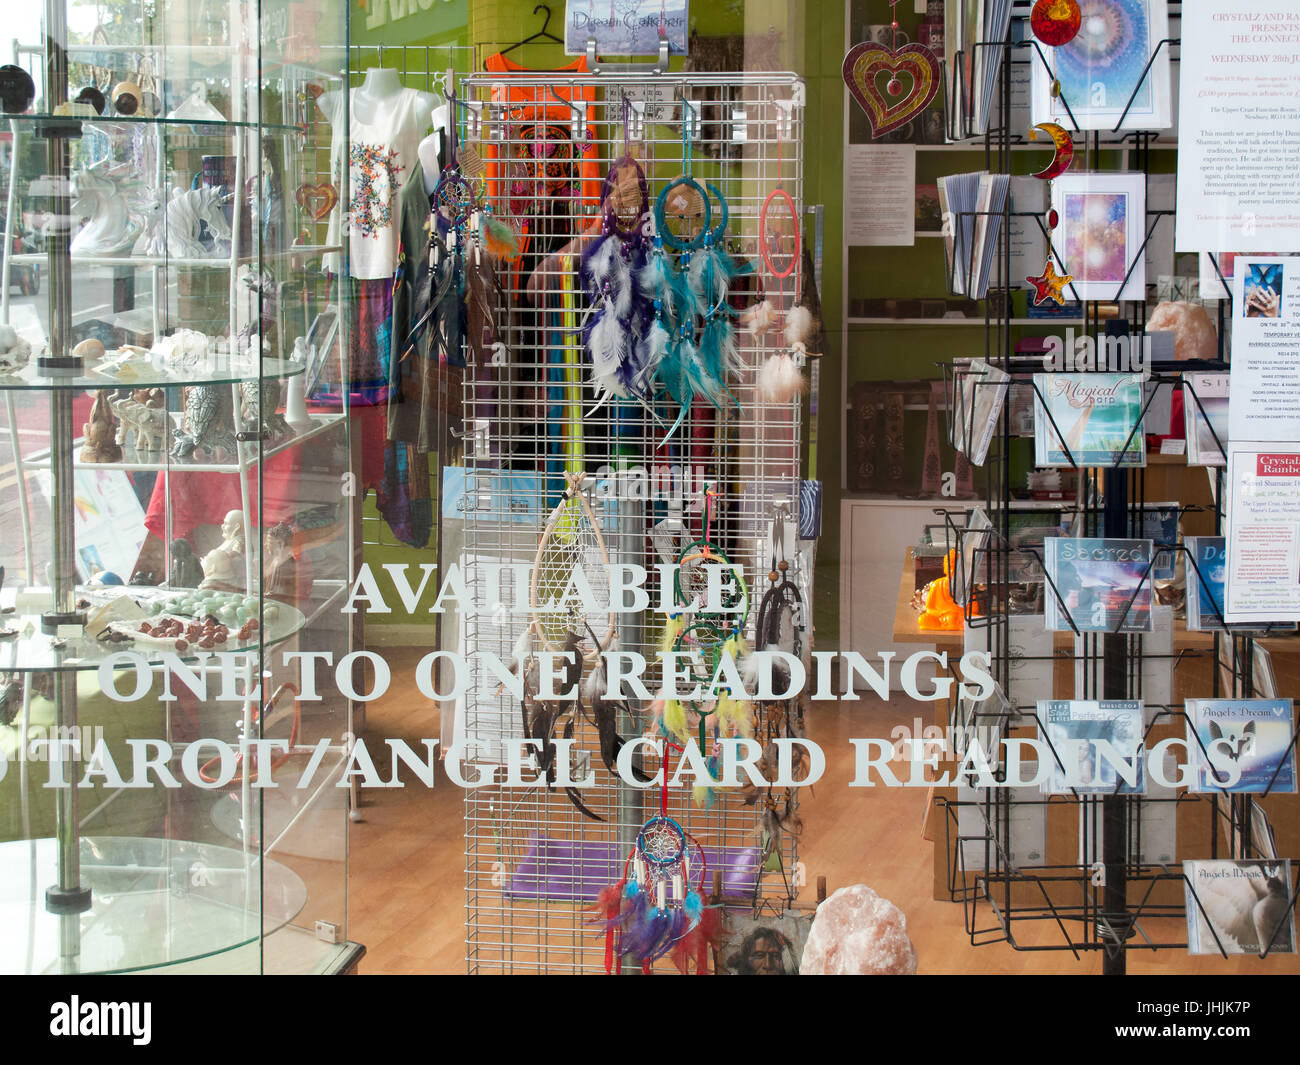 Available one to one readings, Tarot and Angel card readings sign in shop window, used to predict the future - Stock Image